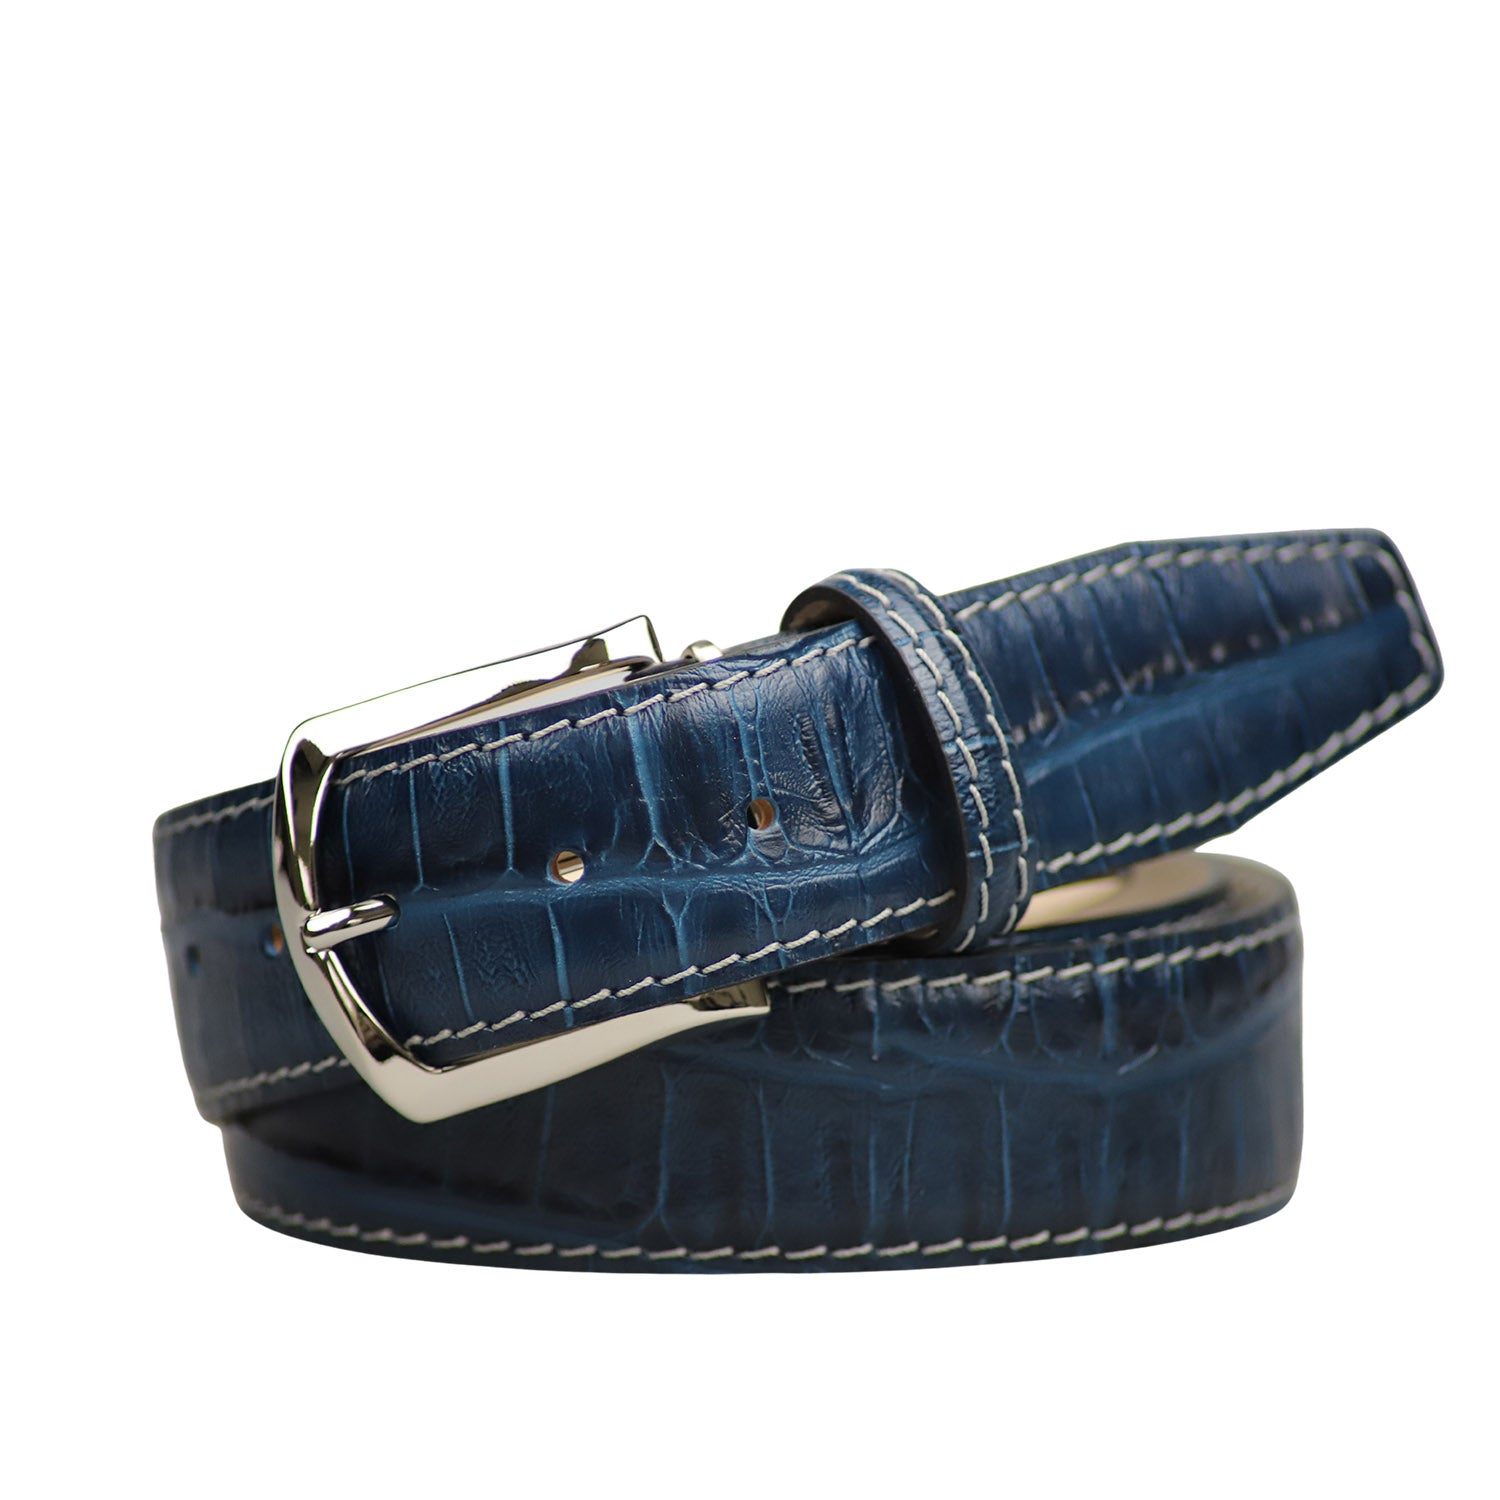 Mock Caiman Federal Blue Belt - Gray / 44 / 35mm | Mens Fashion & Leather Goods by Roger Ximenez